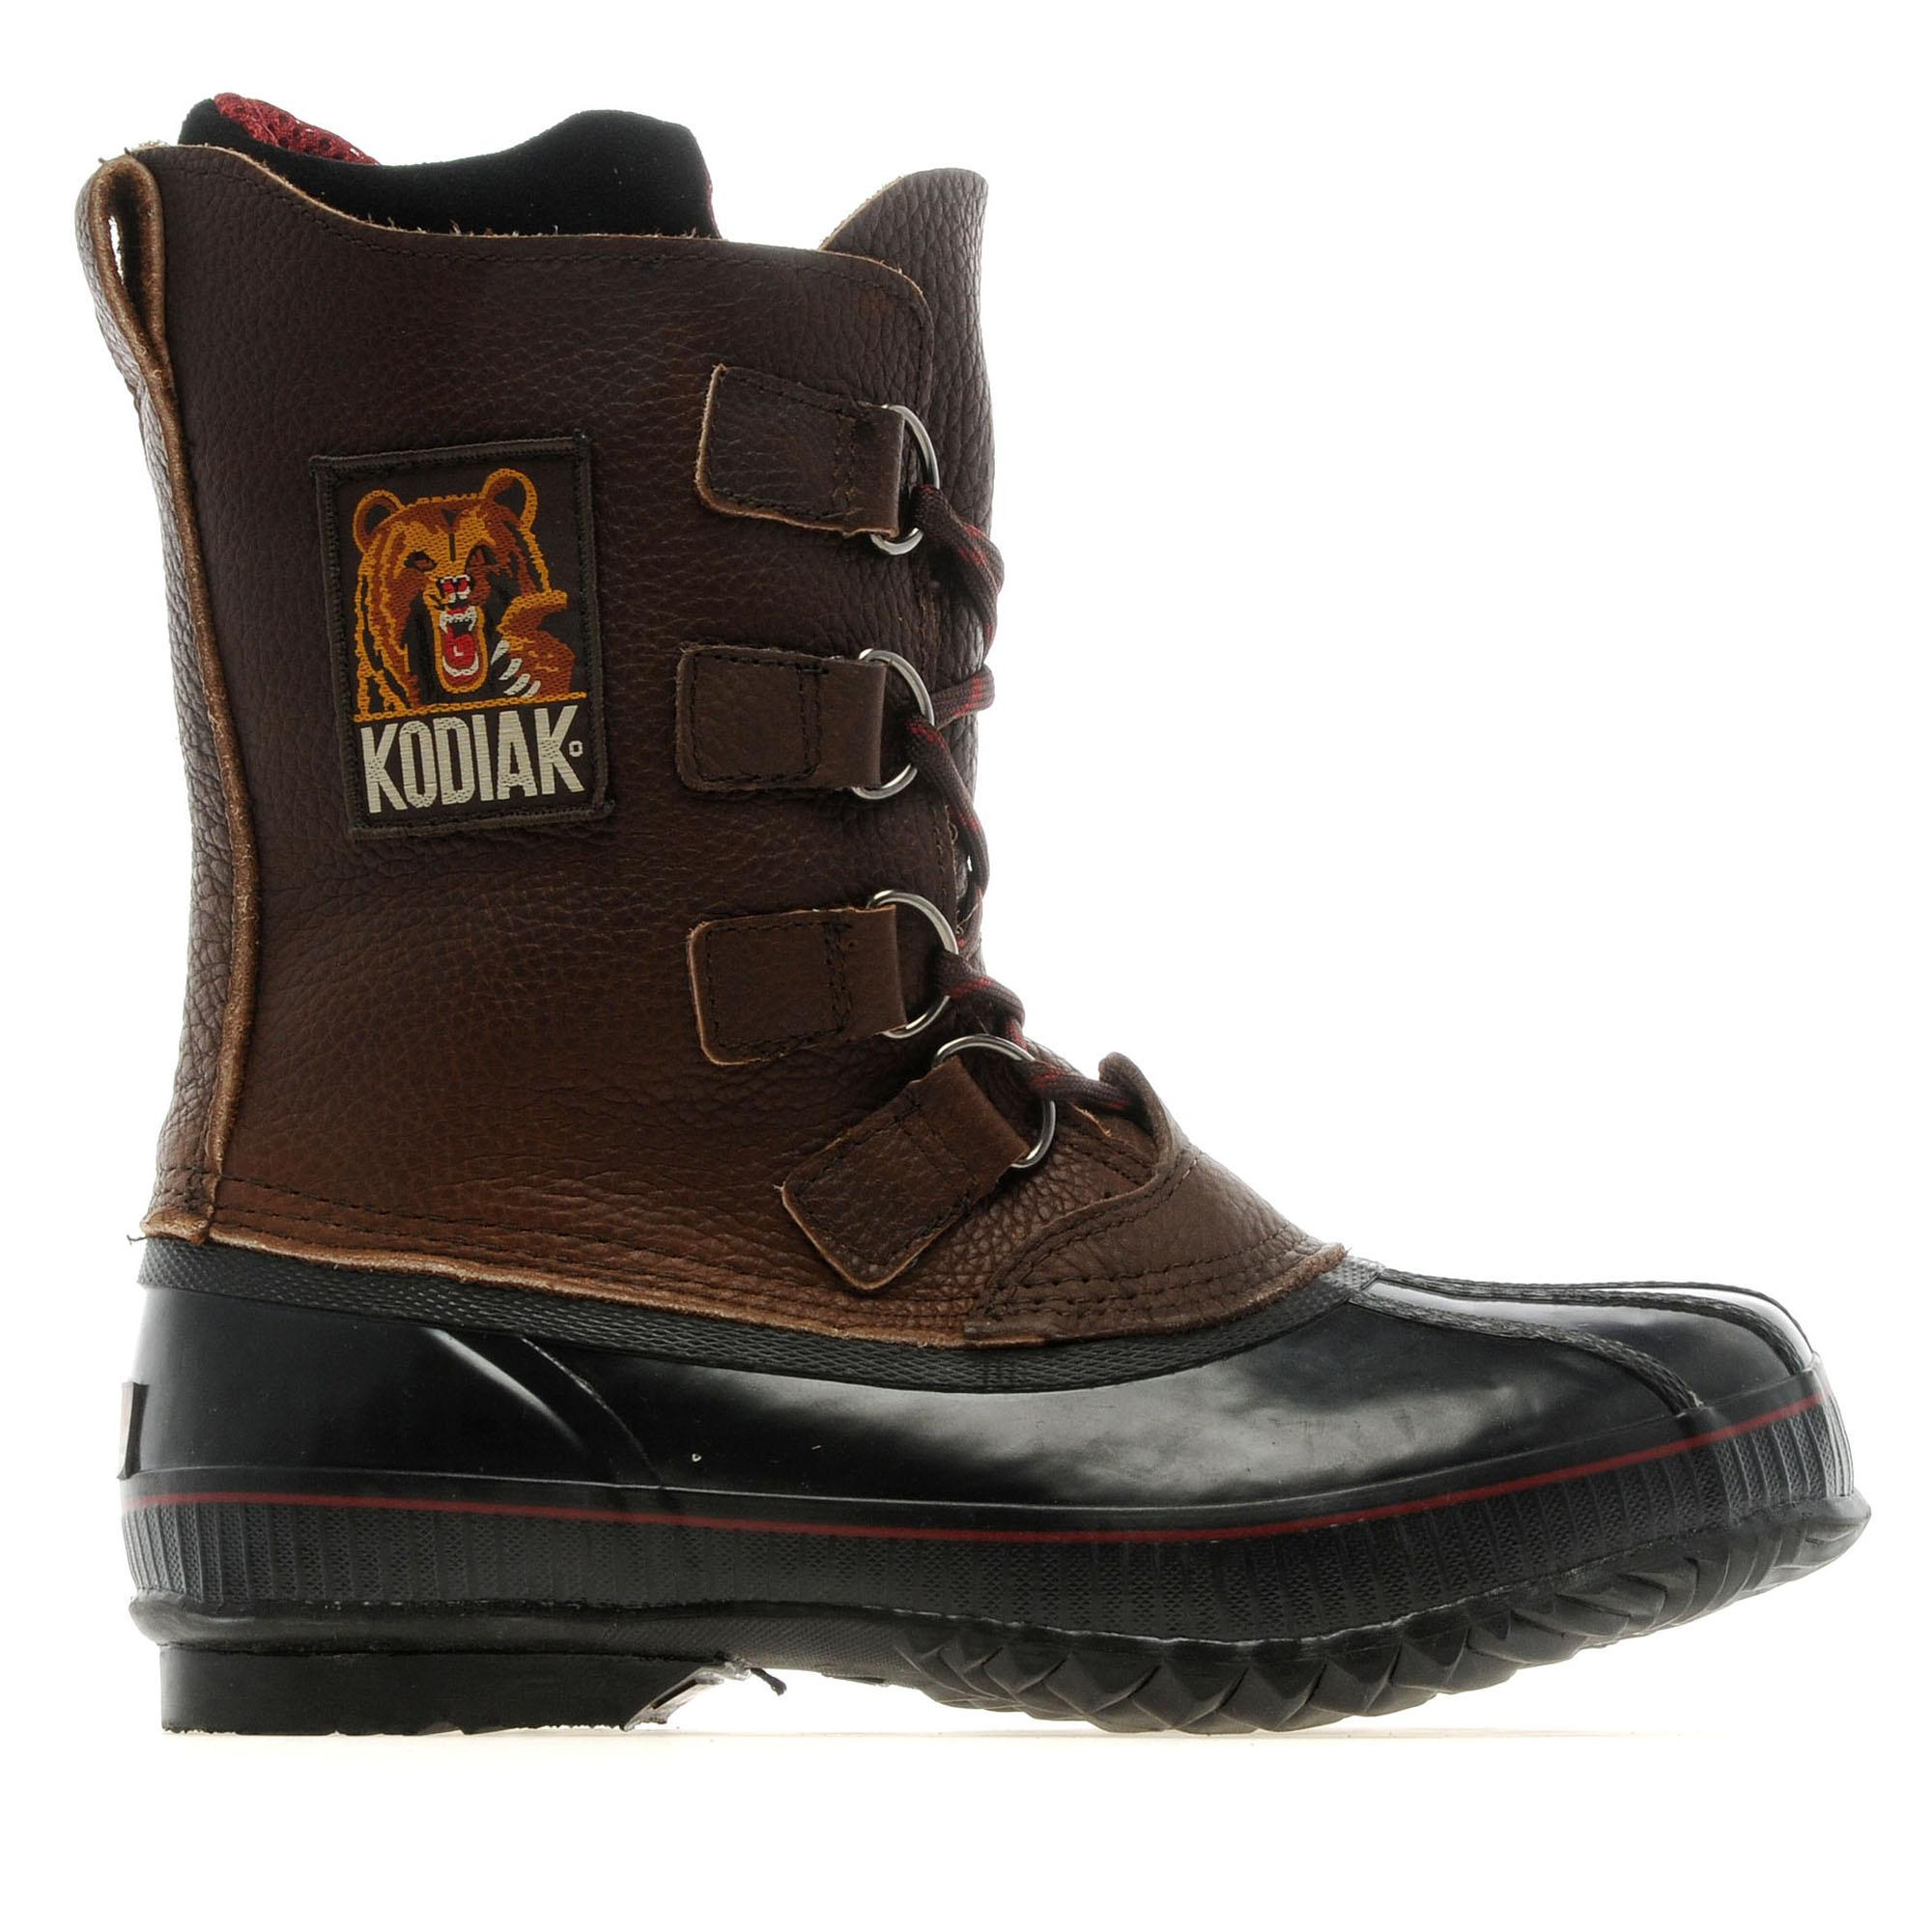 buy cheap mens snow boots compare s footwear prices